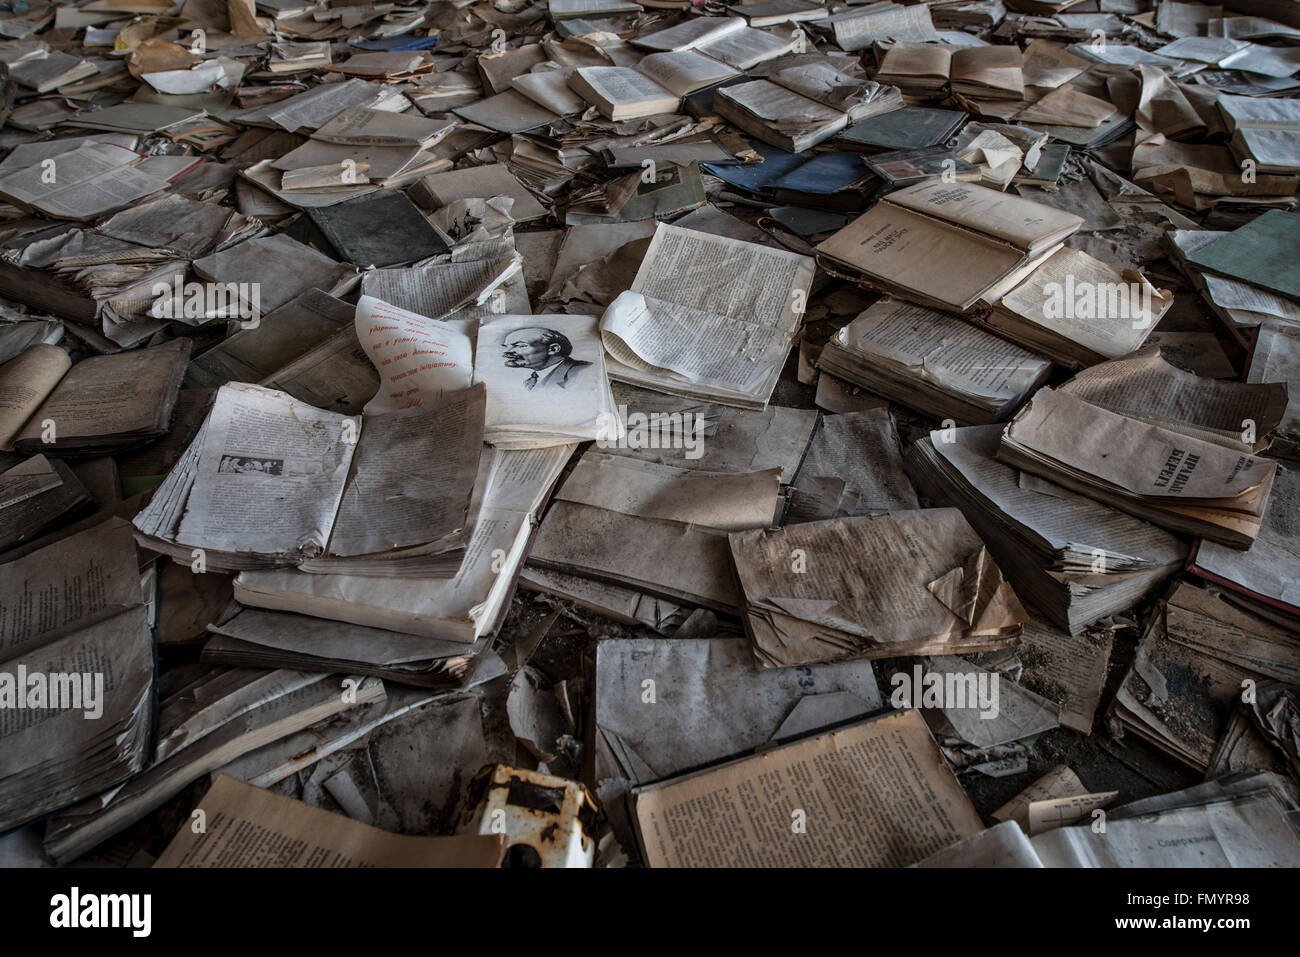 Books scattered across floor in Pripyat, Chernobyl scene of 1986 nuclear disaster - Stock Image